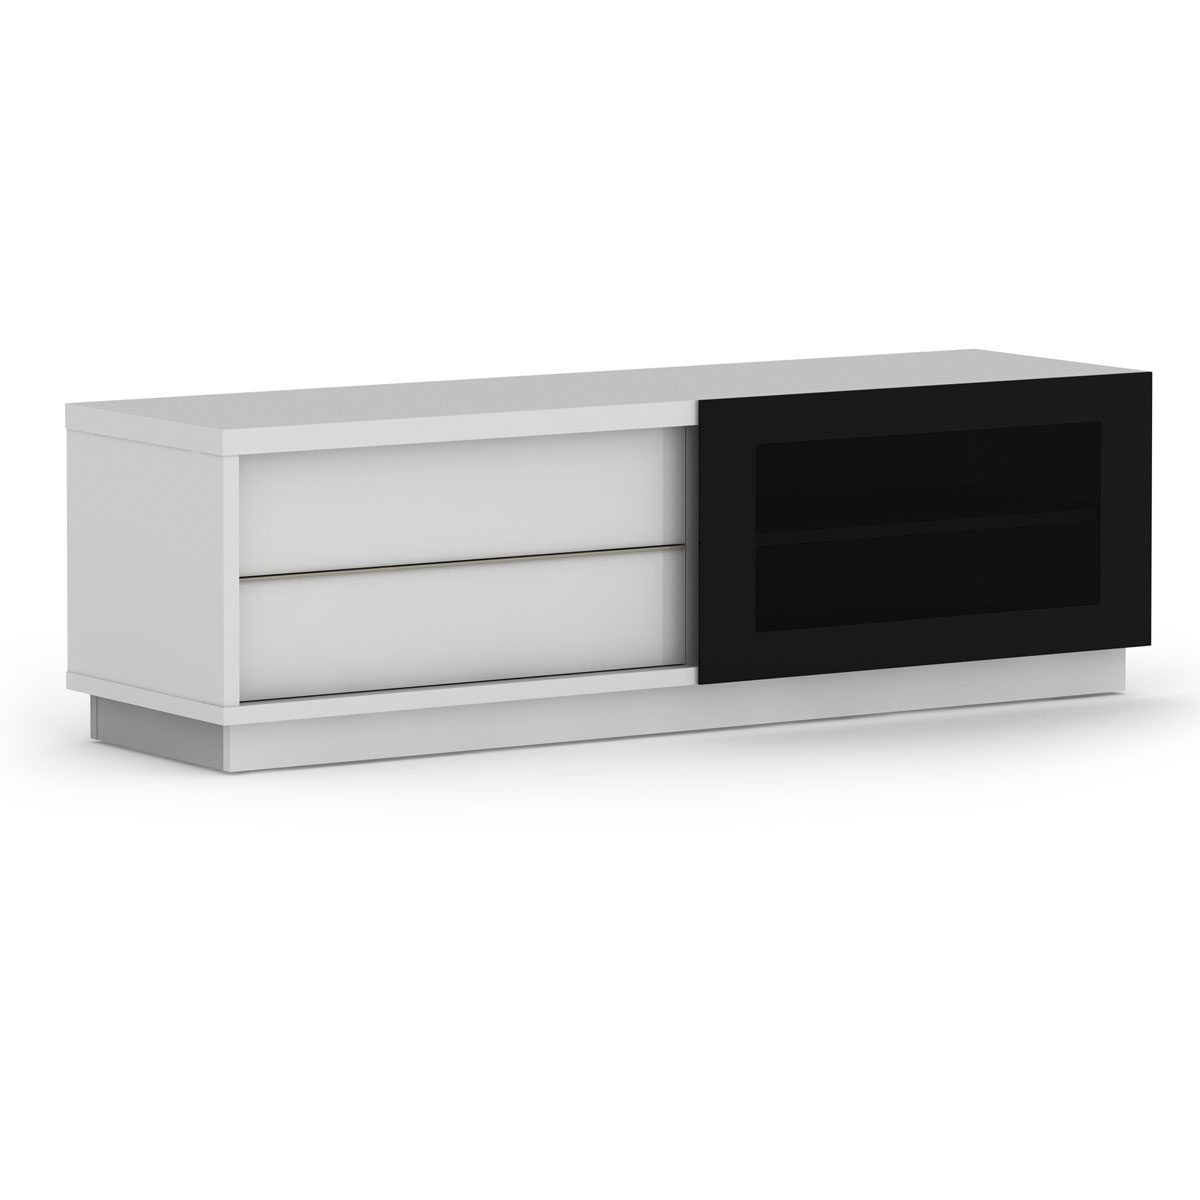 elmob harmony ha 160 02 blanc meuble tv elmob sur ldlc. Black Bedroom Furniture Sets. Home Design Ideas